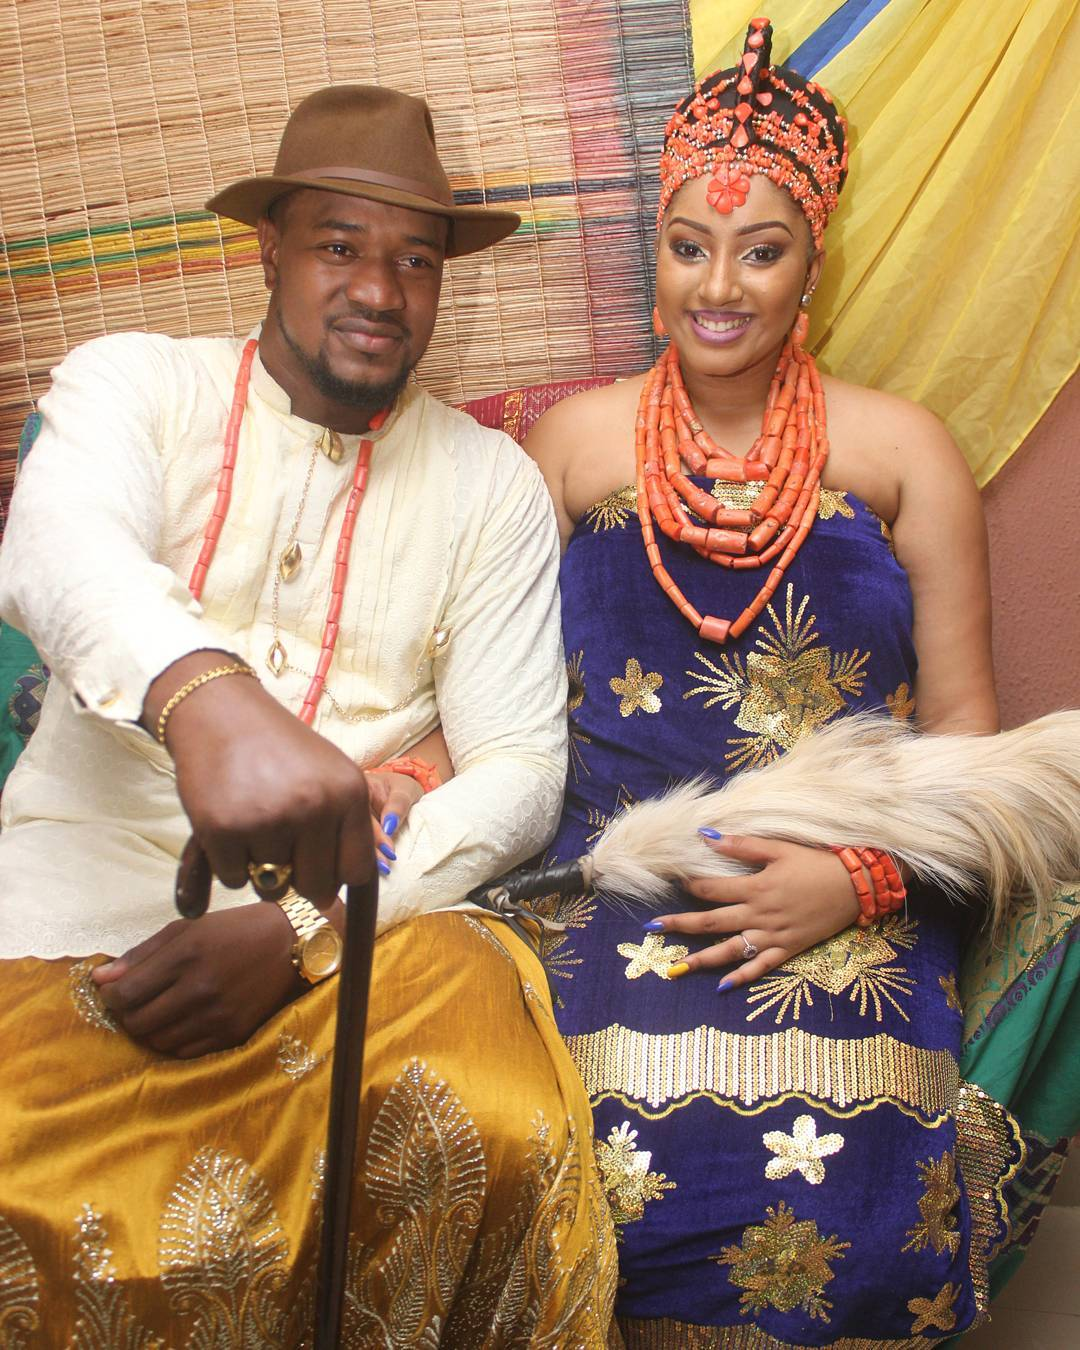 """67fa04f8e9e197be53c7846860dc2fa0 - """"I am happy, hurting & healing at the same time,"""" - Mofe Duncan's ex-wife says, months after marriage crashed"""